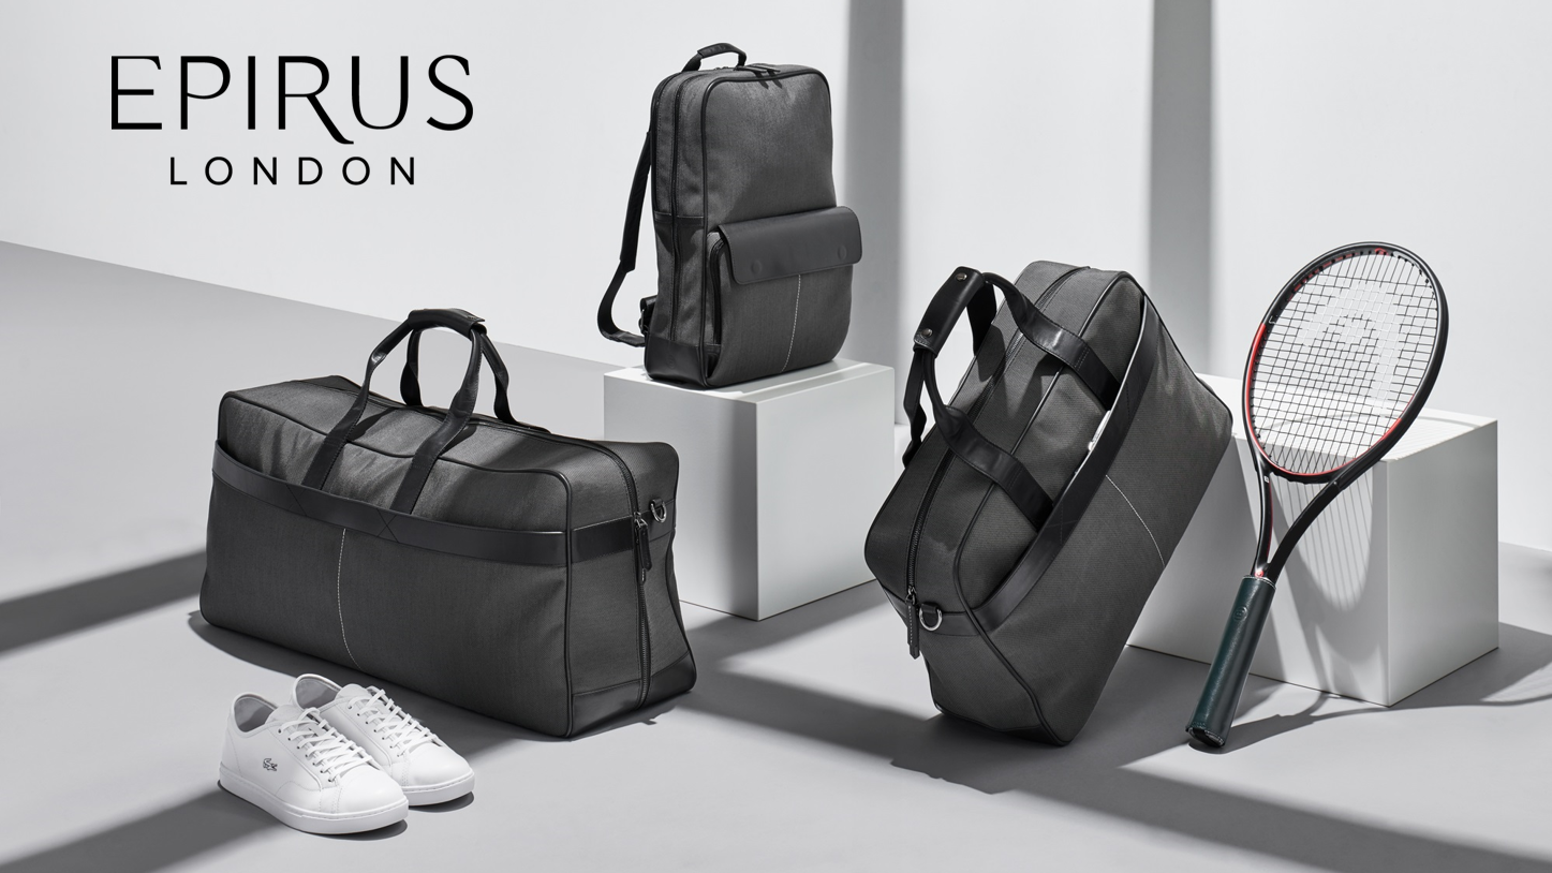 A new kind of tennis bag designed for every aspect of your life, both on & off the court